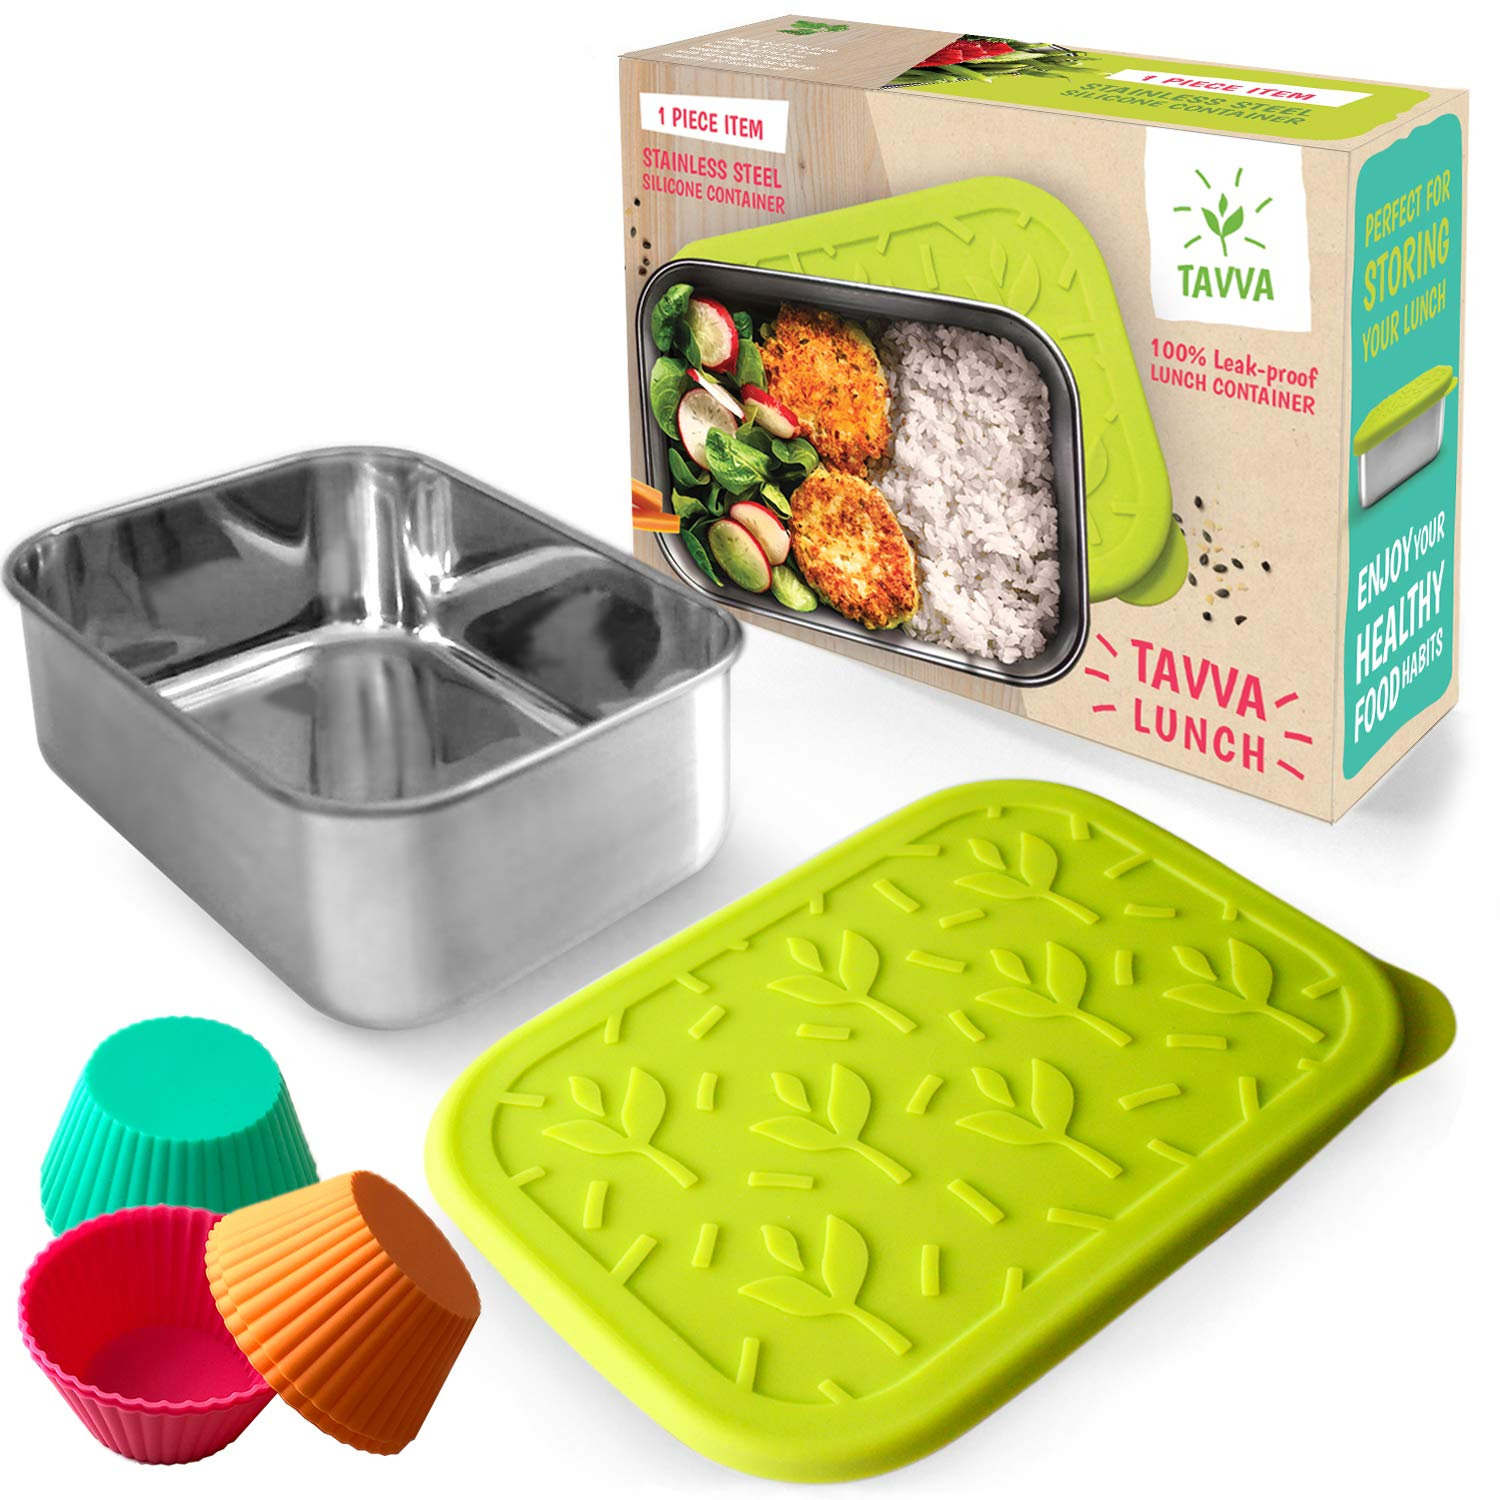 TAVVA Stainless Steel Lunch Container 23oz with Leakproof Food-grade Silicone Lid w/ 6 Silicone Cupcake Liners - Also Suitable as Kids Lunch Box, Toddler Lunch Box, Sandwich Container by TAVVA